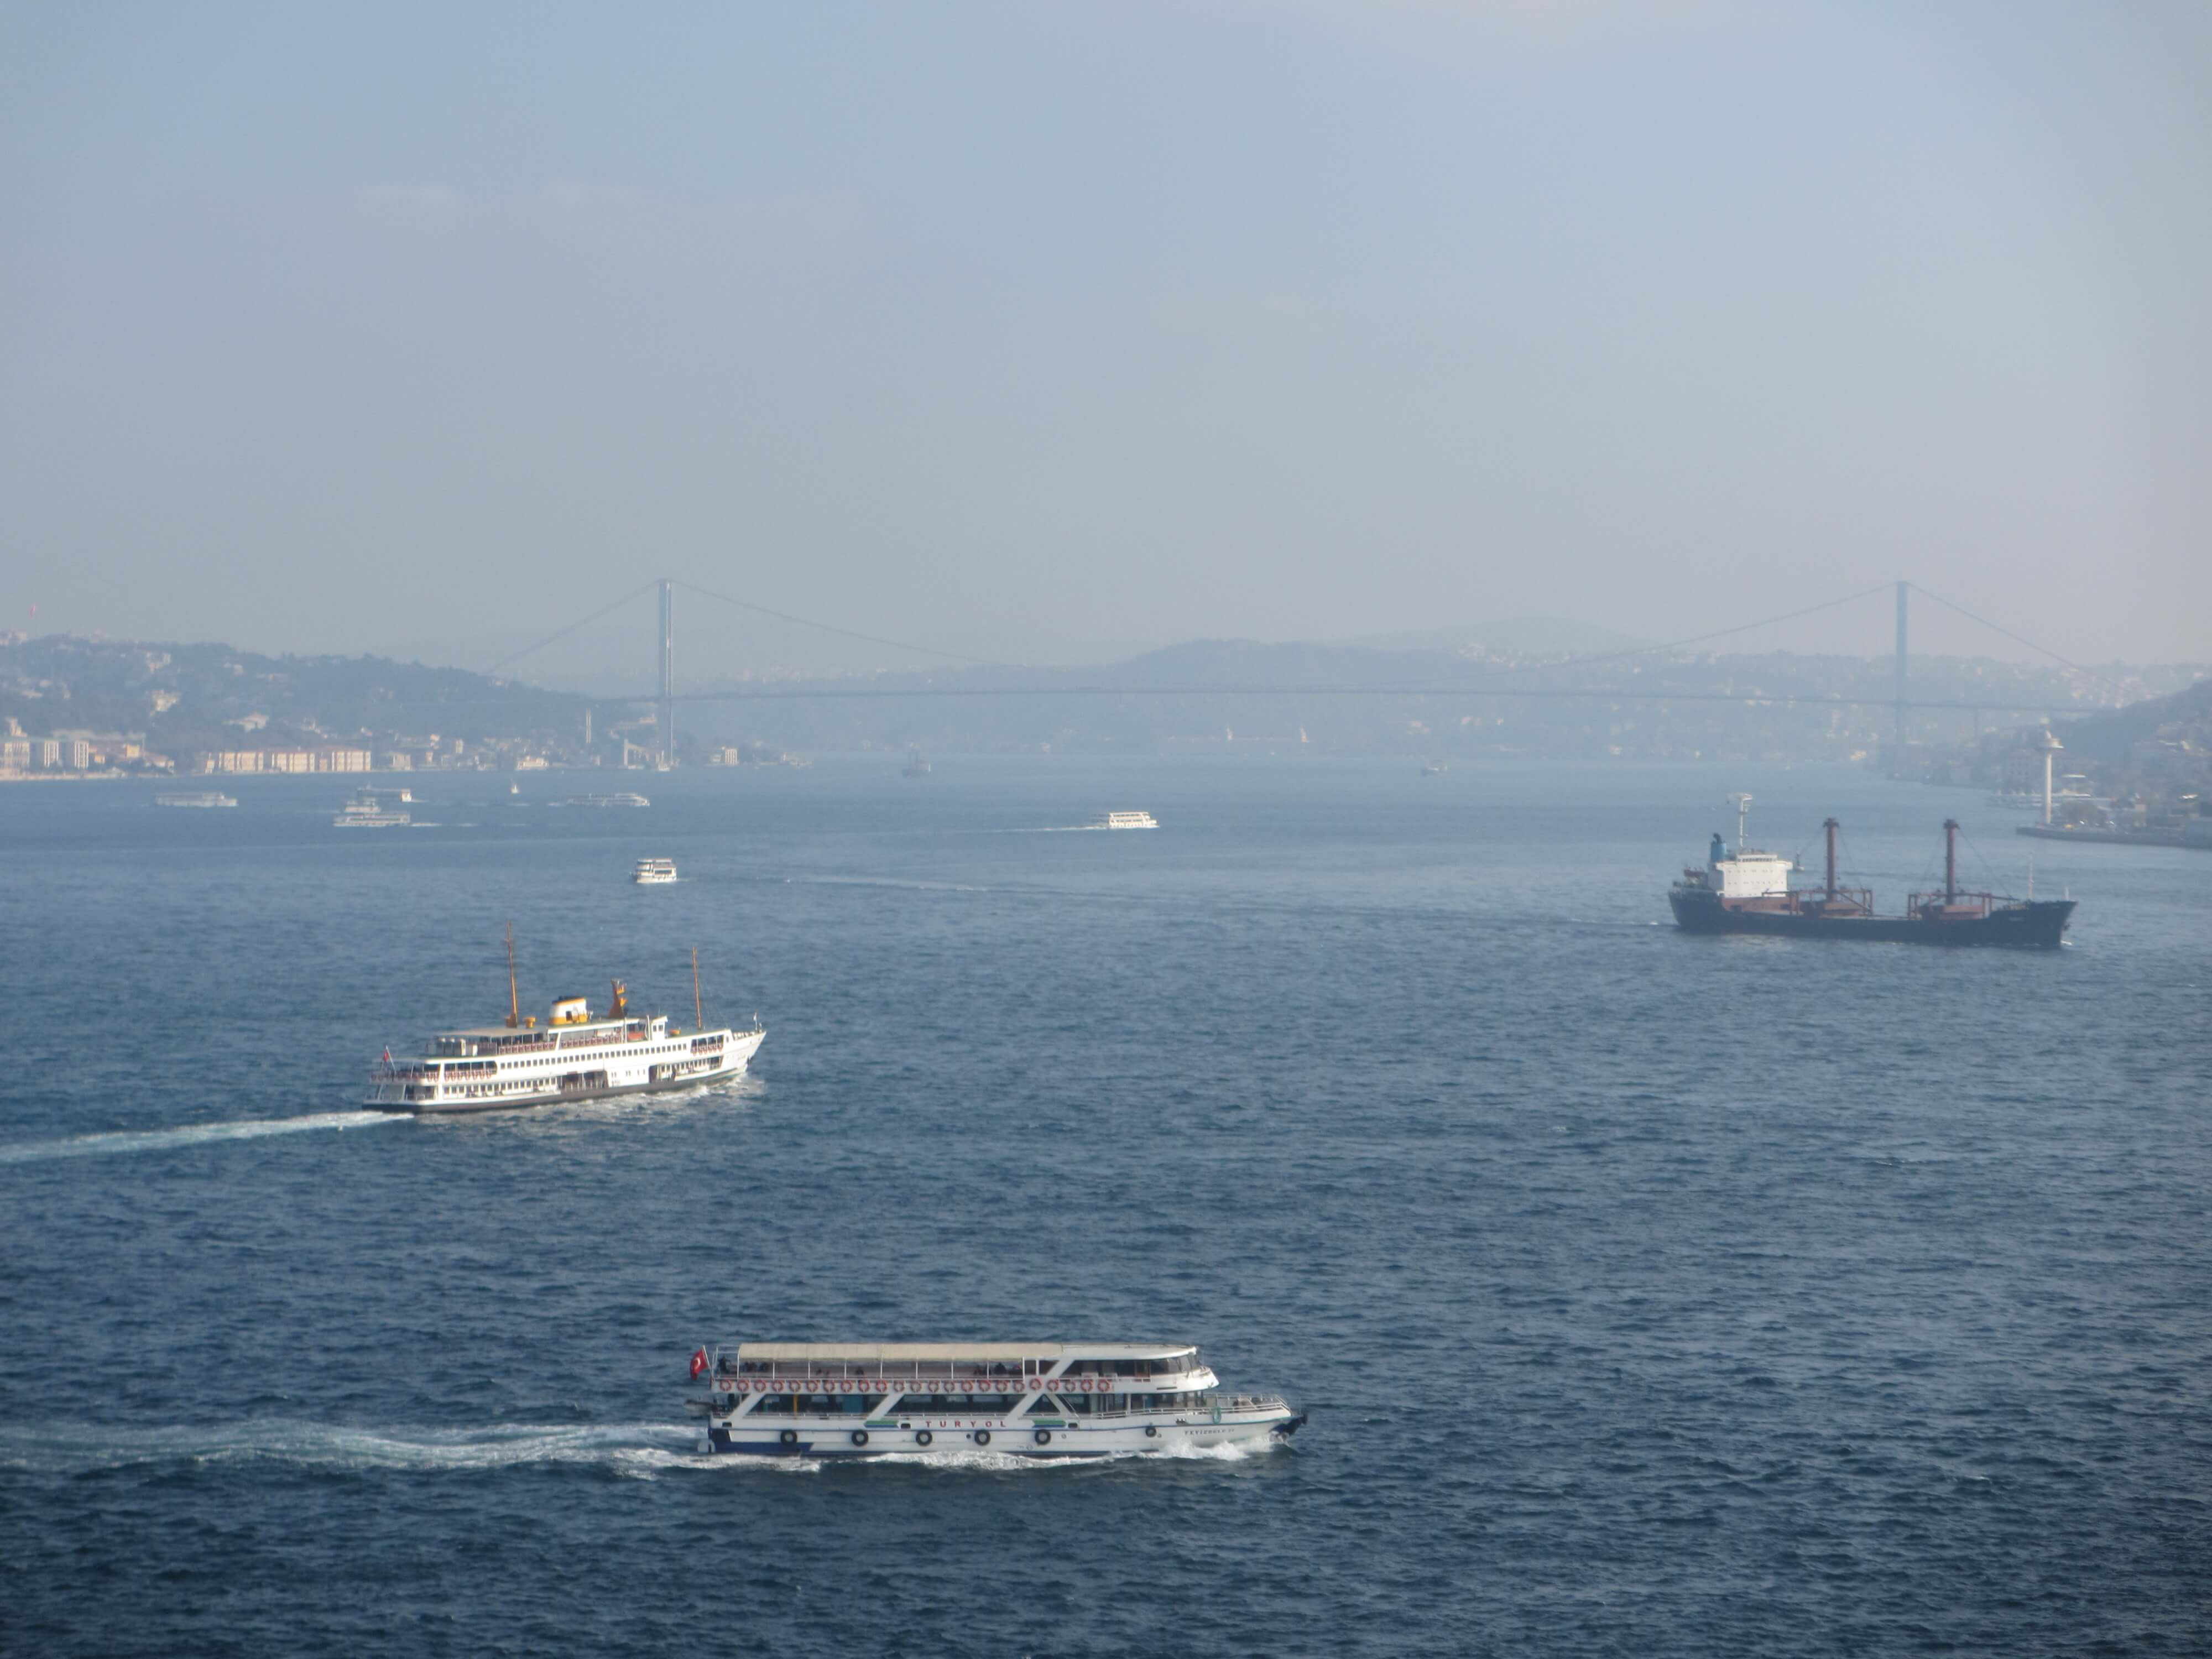 boats on the water of the Bosphorus, Istanbul